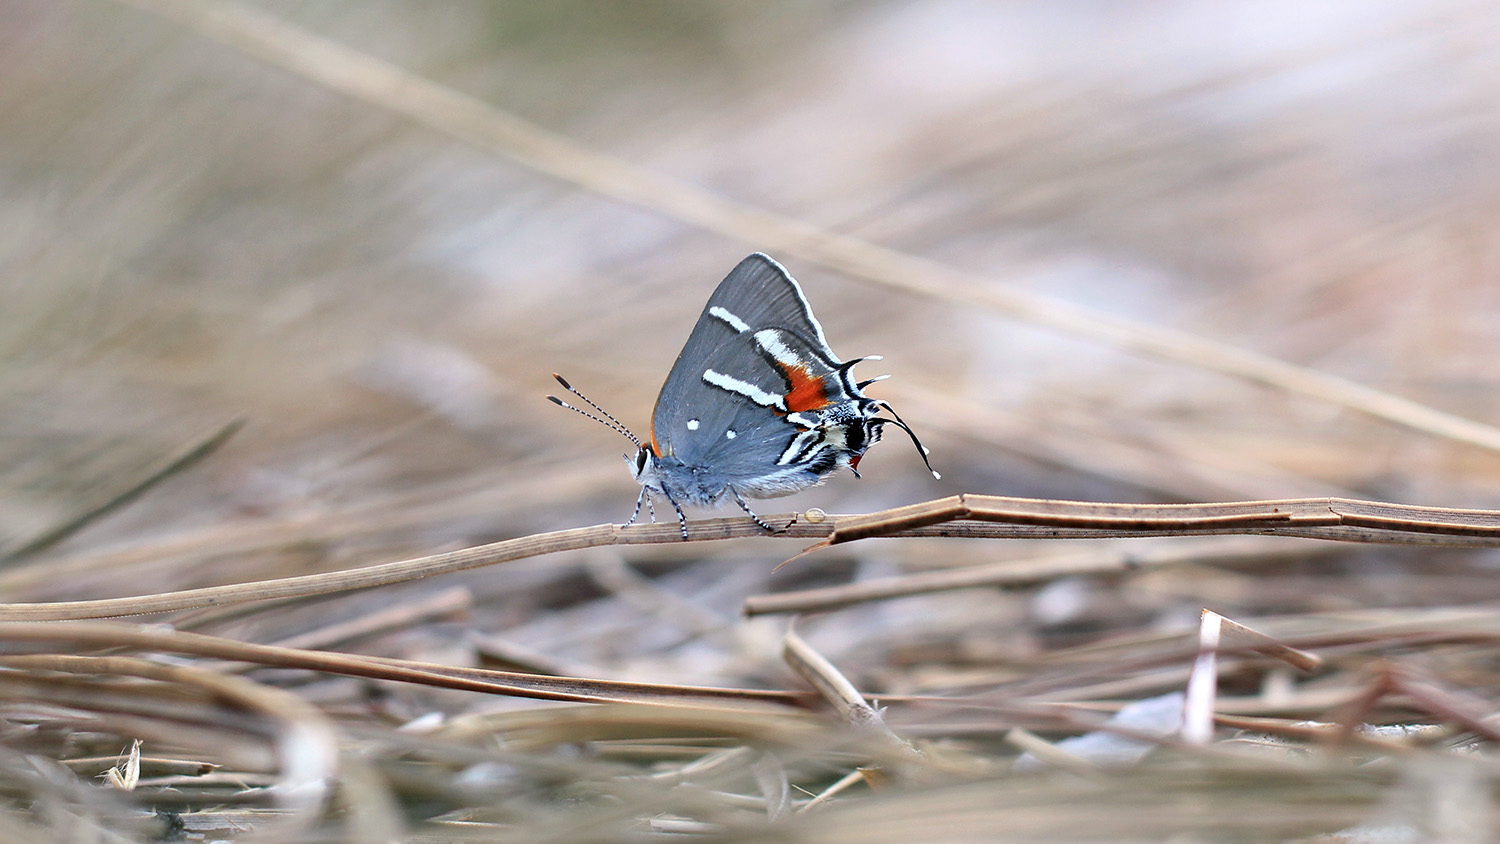 A Bartram's scrub-hairstreak butterfly alighting on a twig.